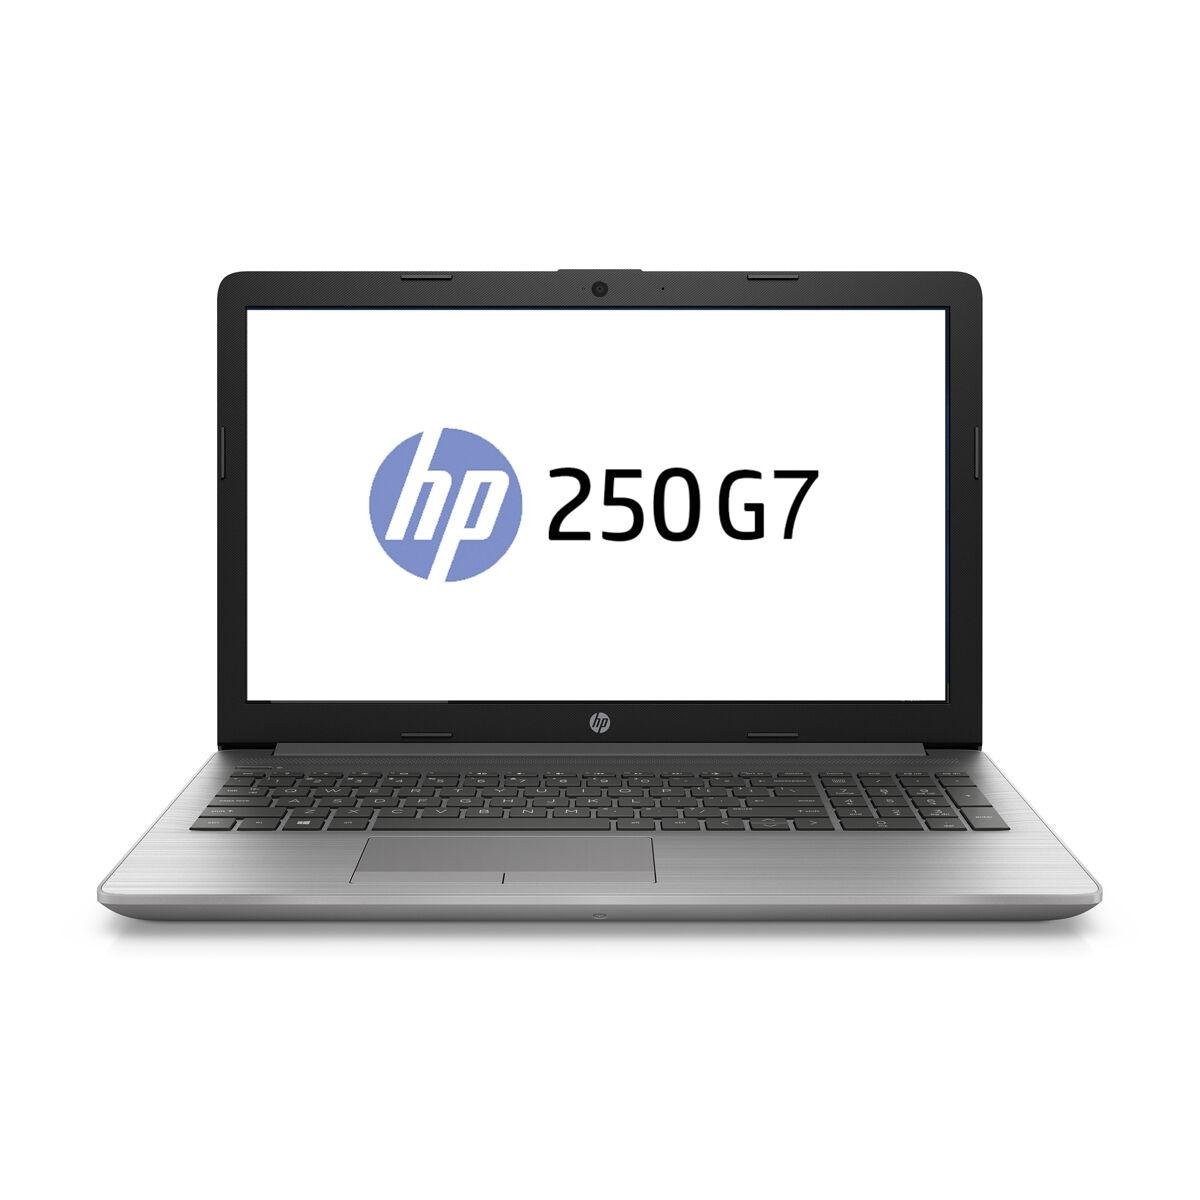 "Лаптоп HP 250 G7, Intel Core i3-8130U, 8GB DDR4, 256GB M.2 NVMe SSD, FHD 15.6"", DVD-RW, Сребрист"